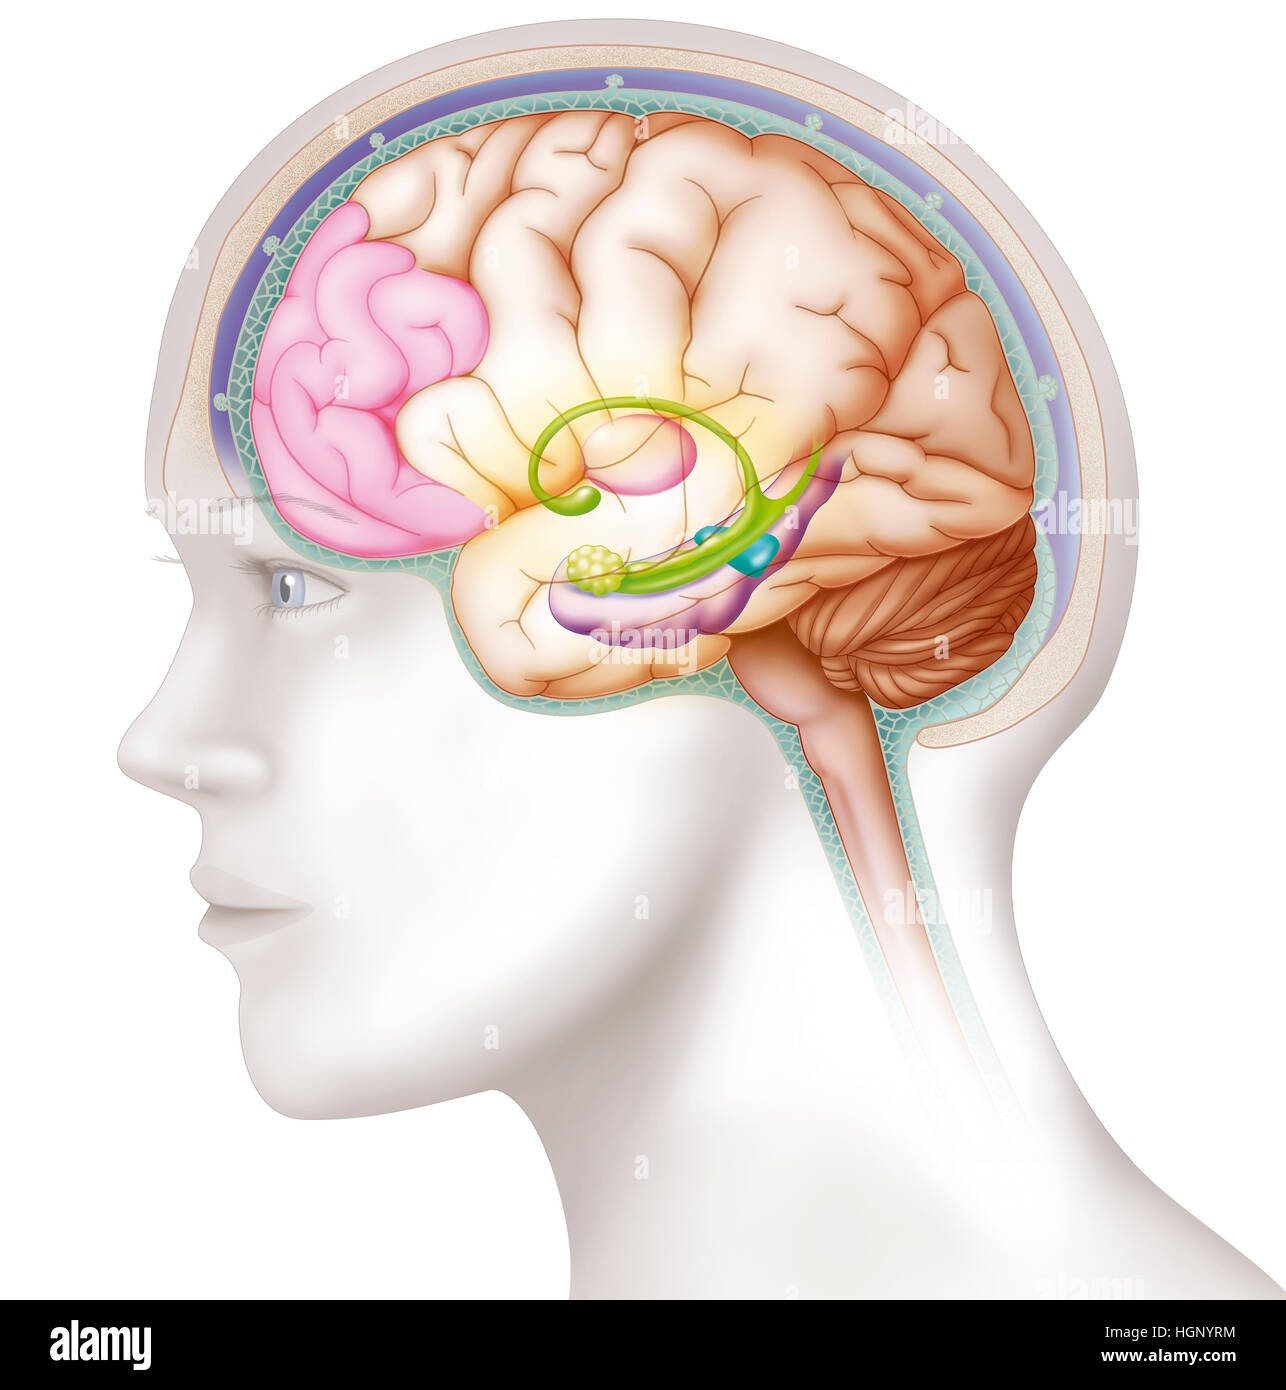 BRAIN, ILLUSTRATION - Stock Image